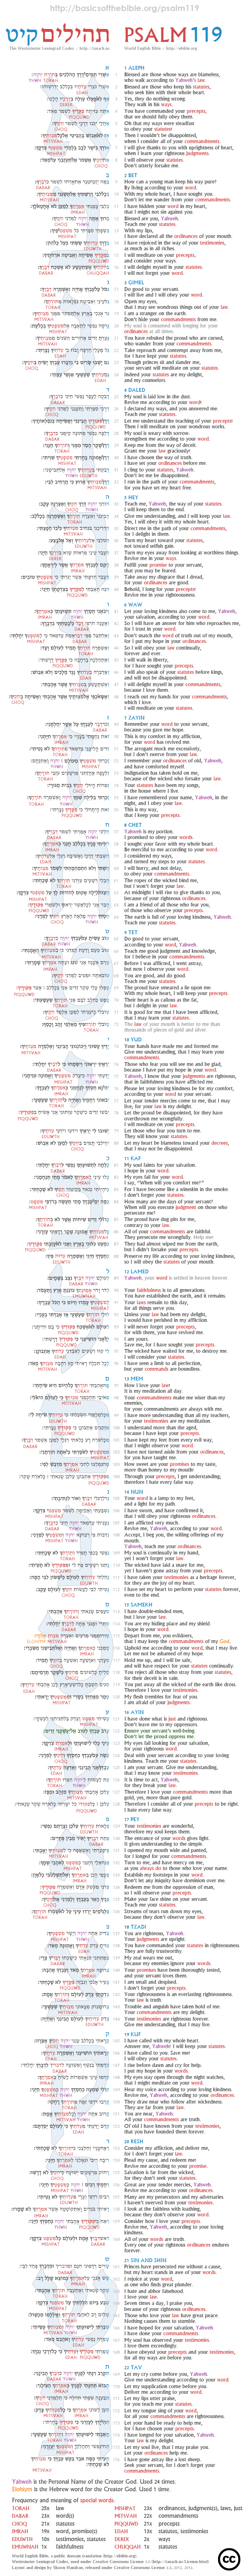 Psalm 91 Commentary